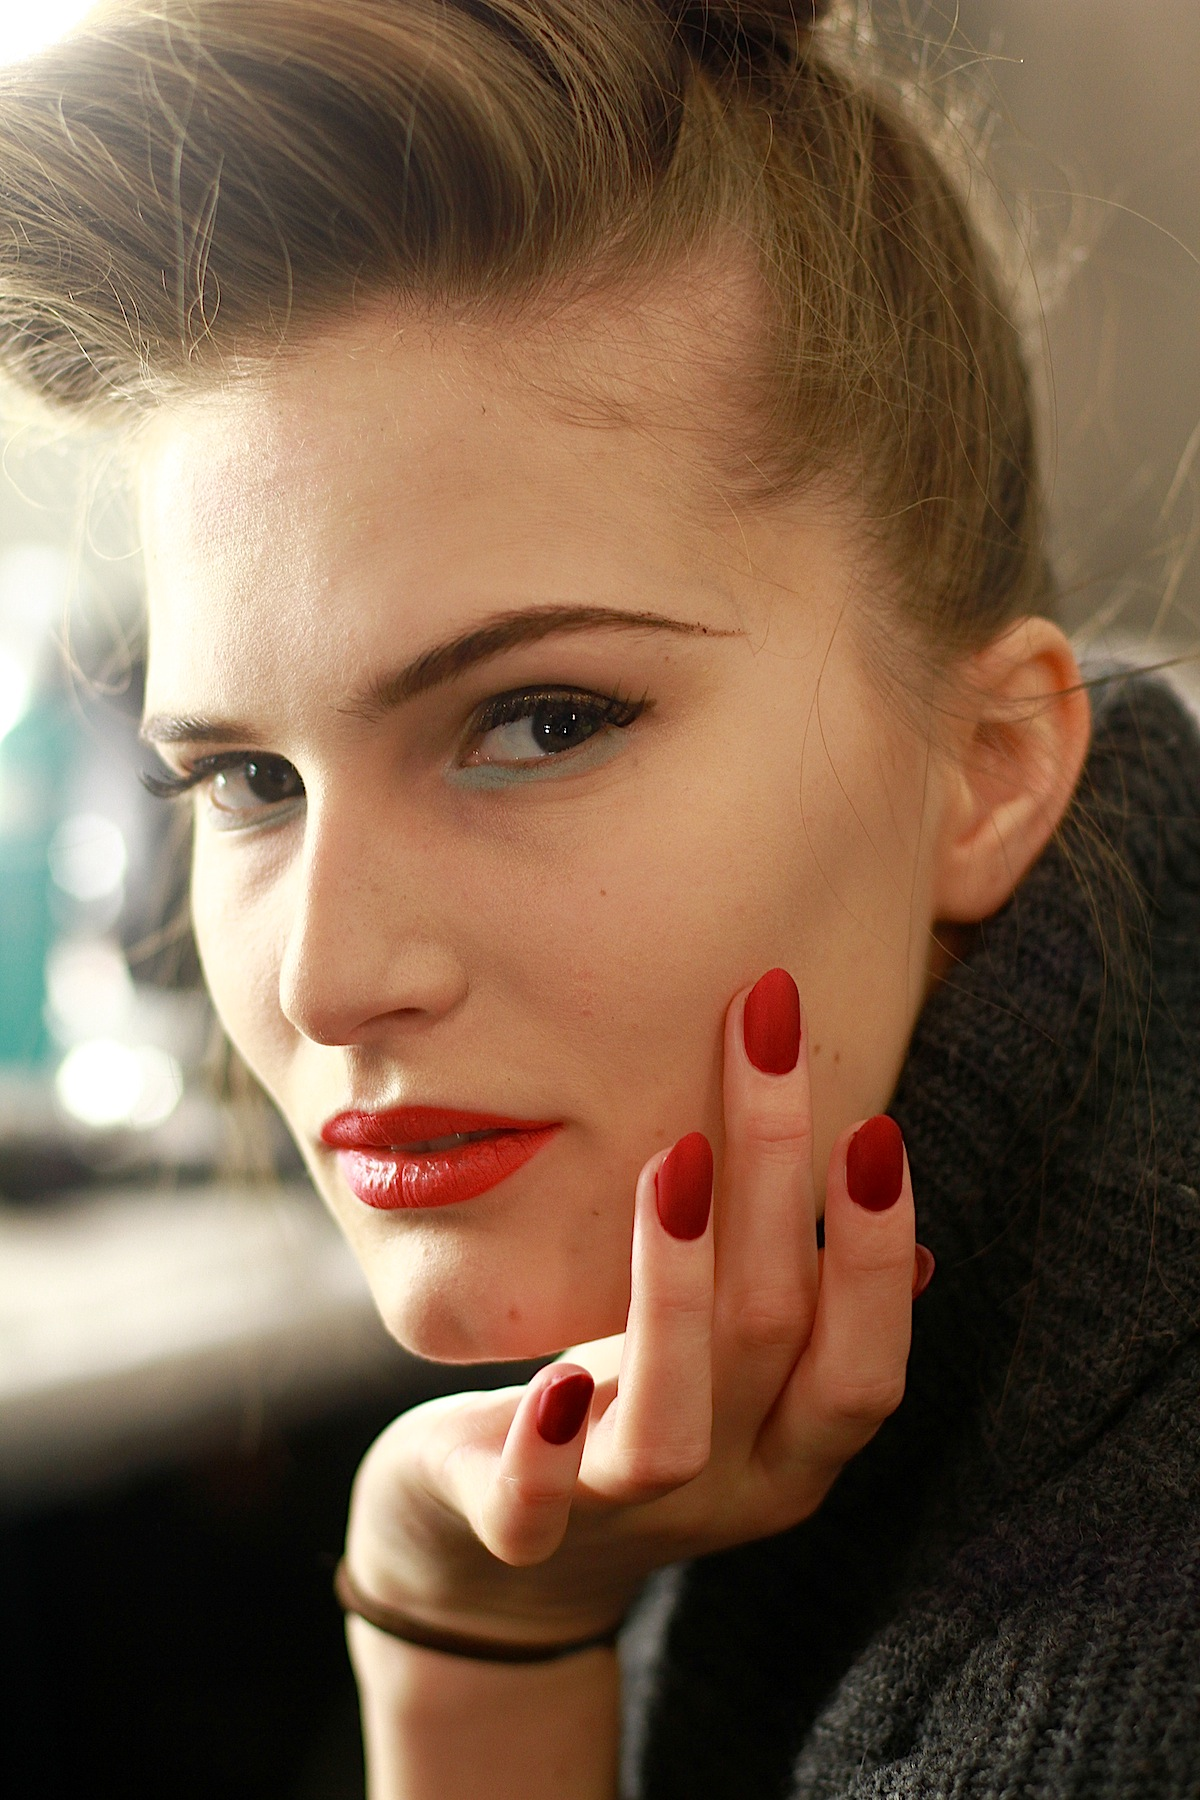 Matte red is retro delicious . .. backstage at Badgley Mischka FW13   Hair: Moroccanoil; Makeup: M.A.C.; Nails: Deborah Lippmann    Image:  The Greyest Ghost  for Cult of Pretty